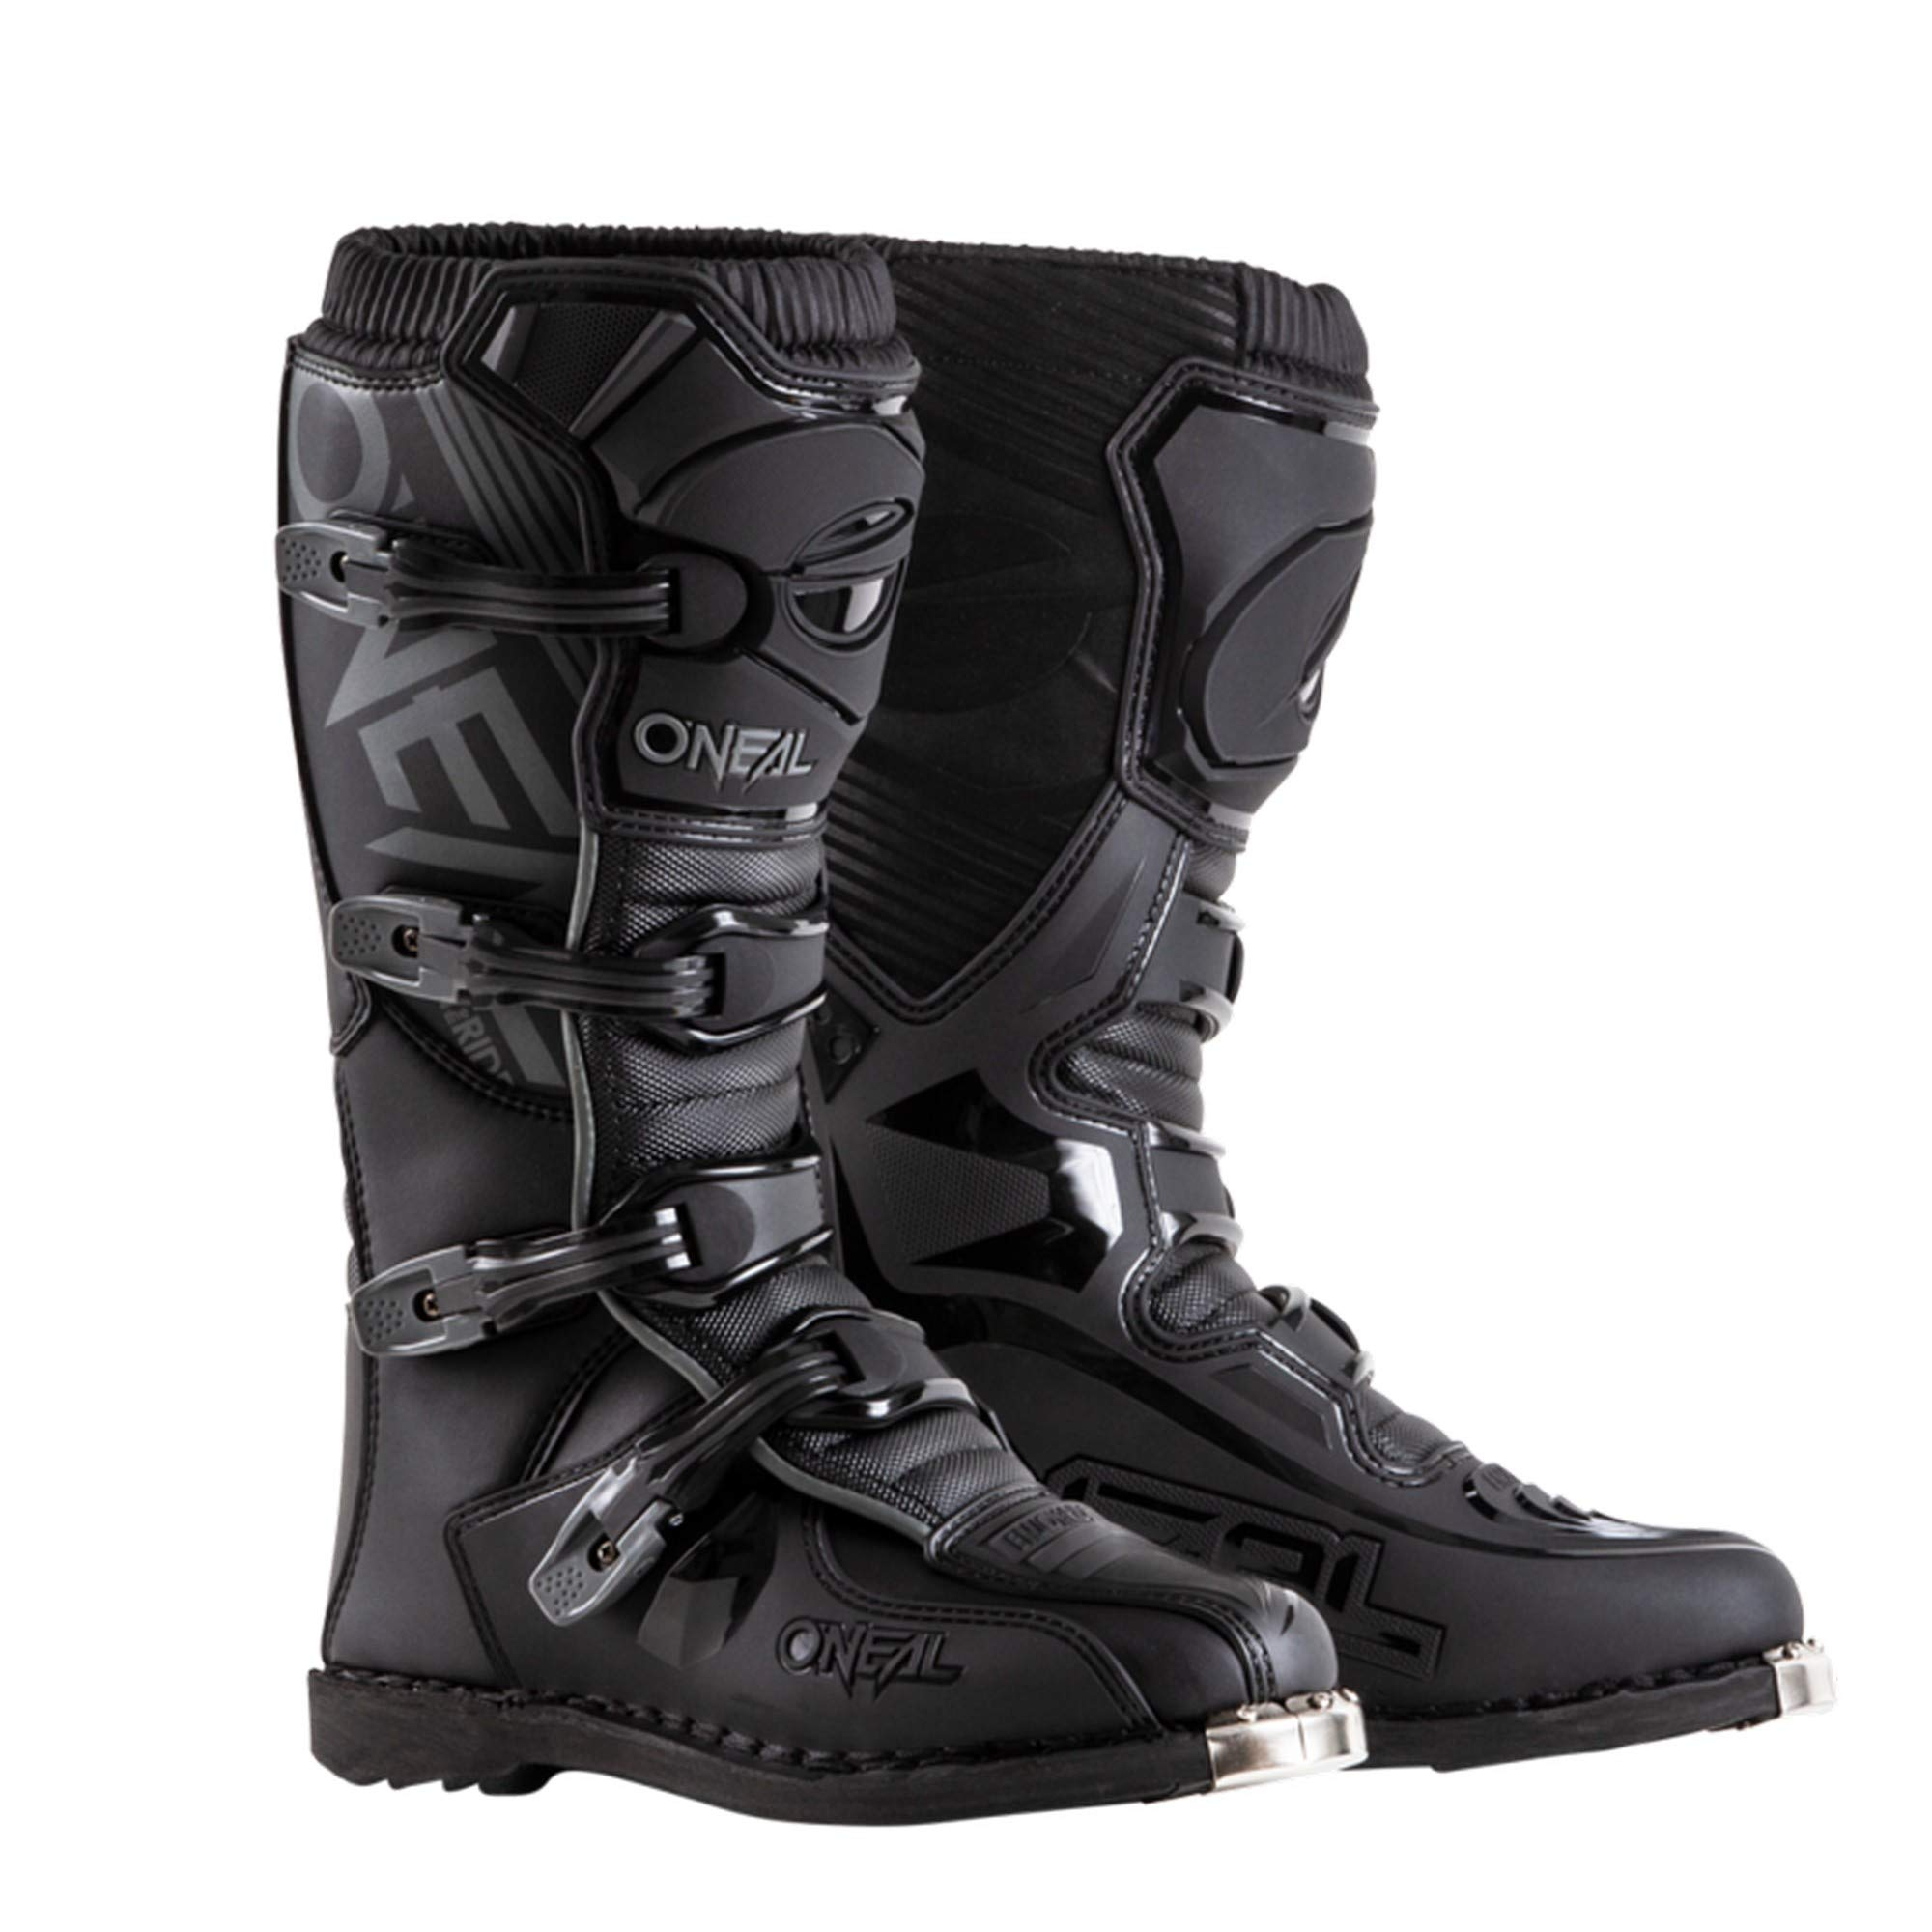 O'Neal 2019 Element Boots (14) (Black) by O'Neal (Image #1)